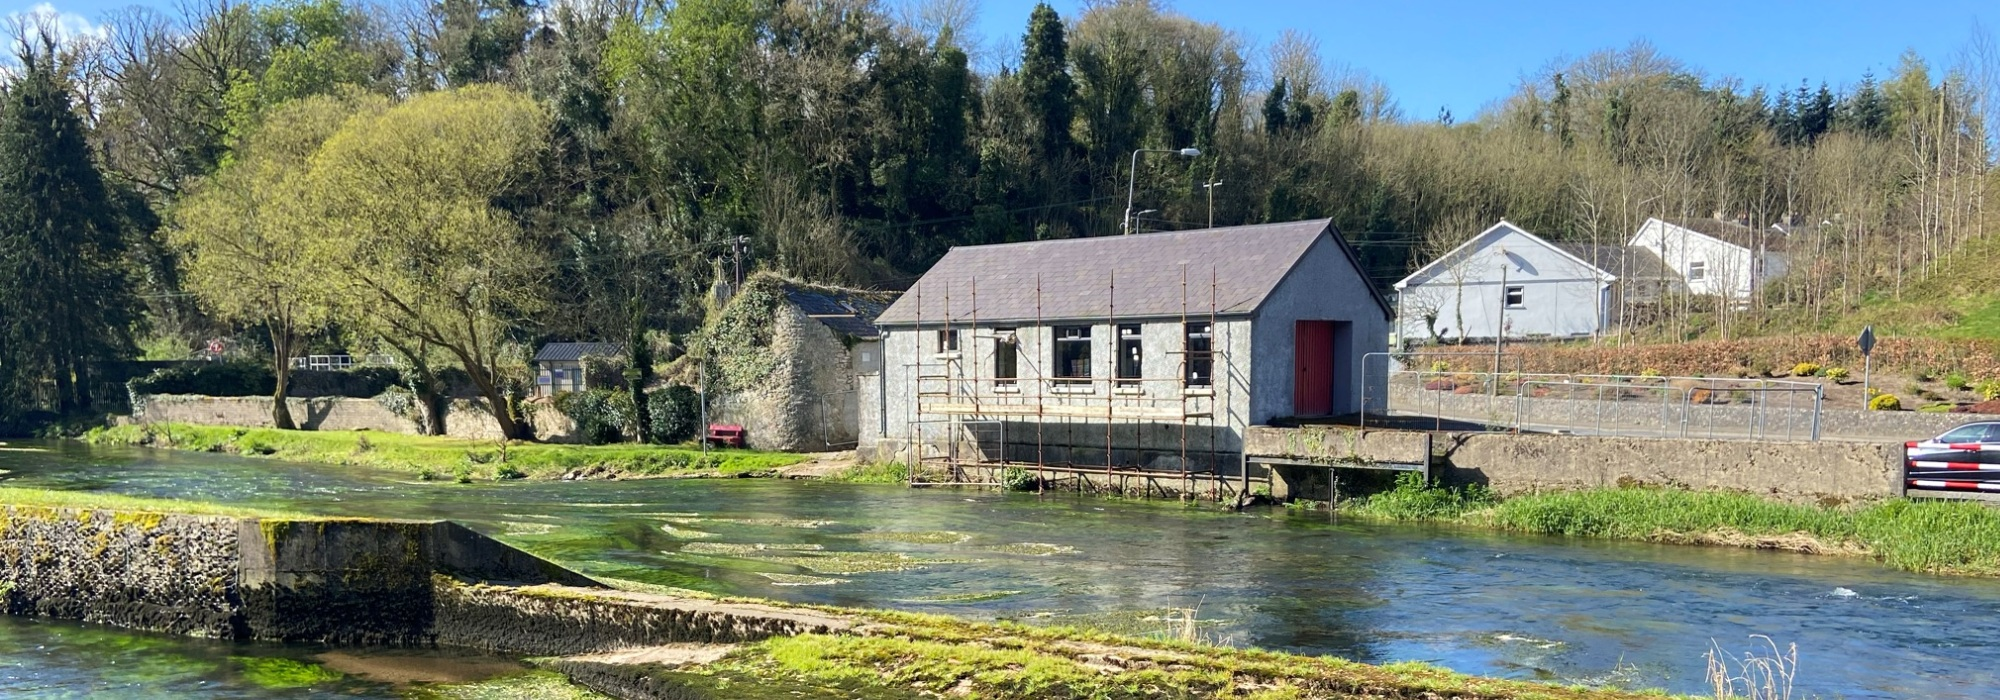 Creamery Buildings, Castletownroche, Co. Cork | Unique Development Opportunity